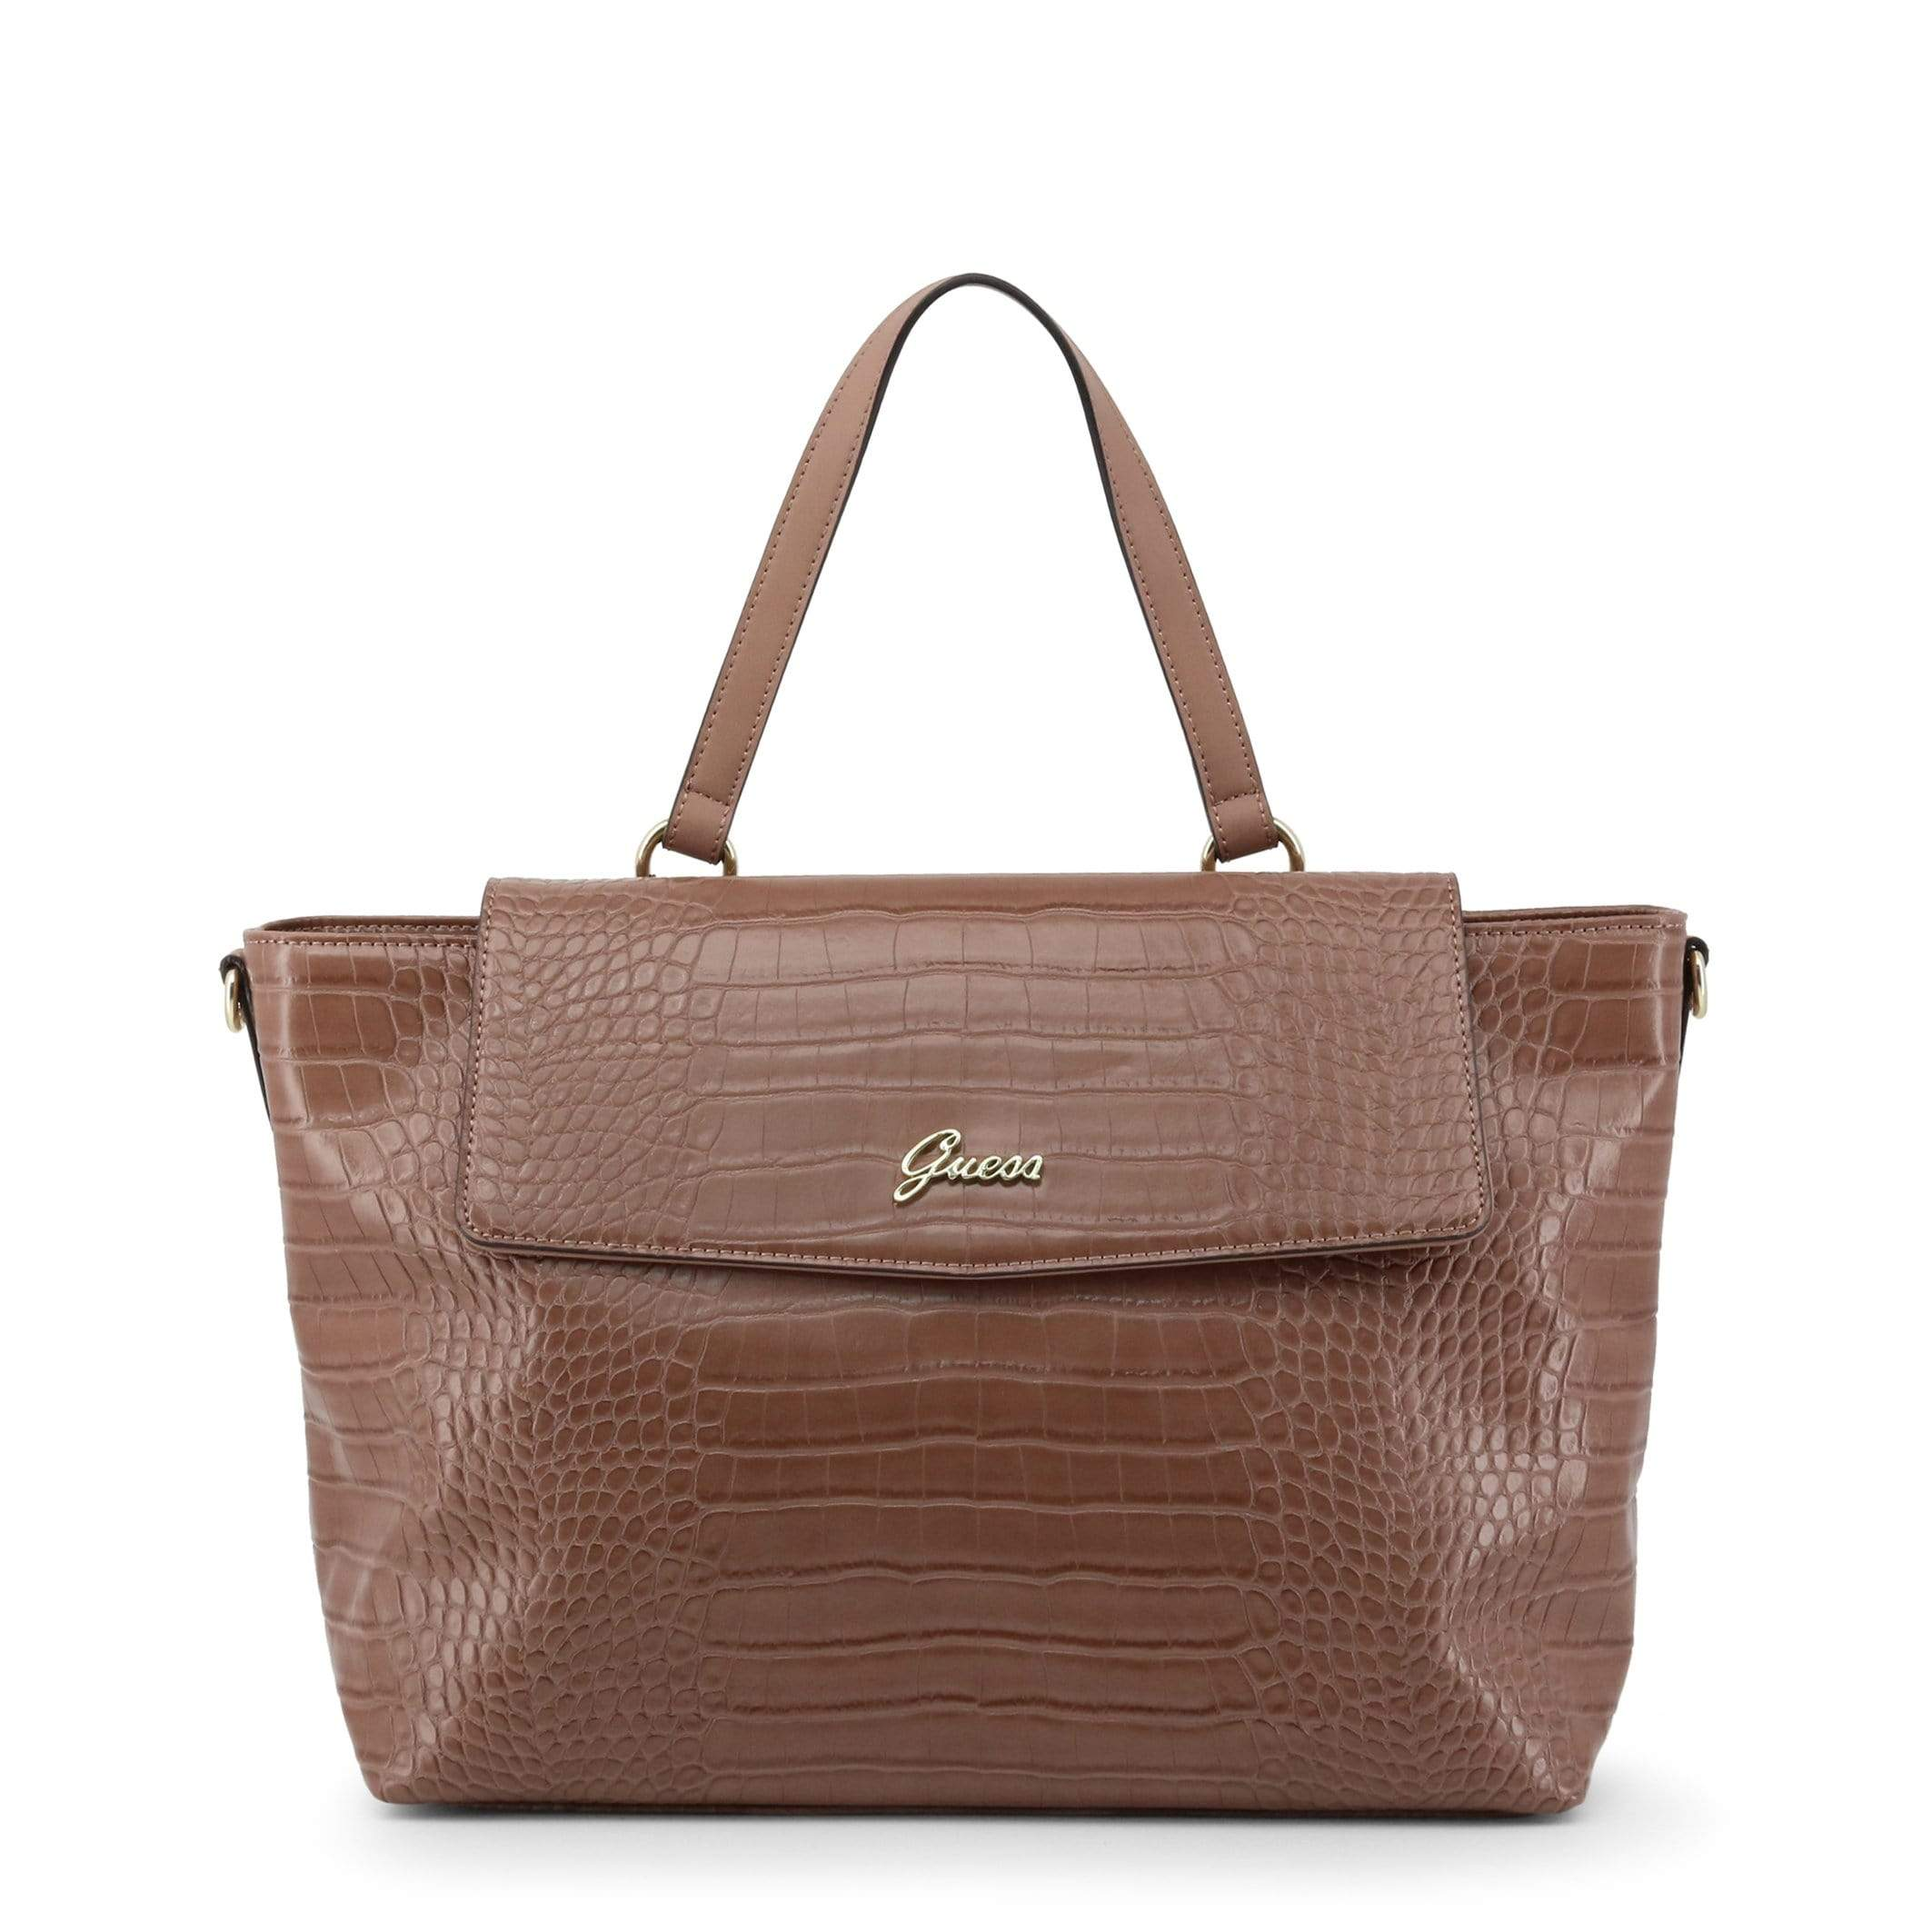 Guess Bags Handbags brown / NOSIZE Guess - ANTILIA_HWANTI_P3719